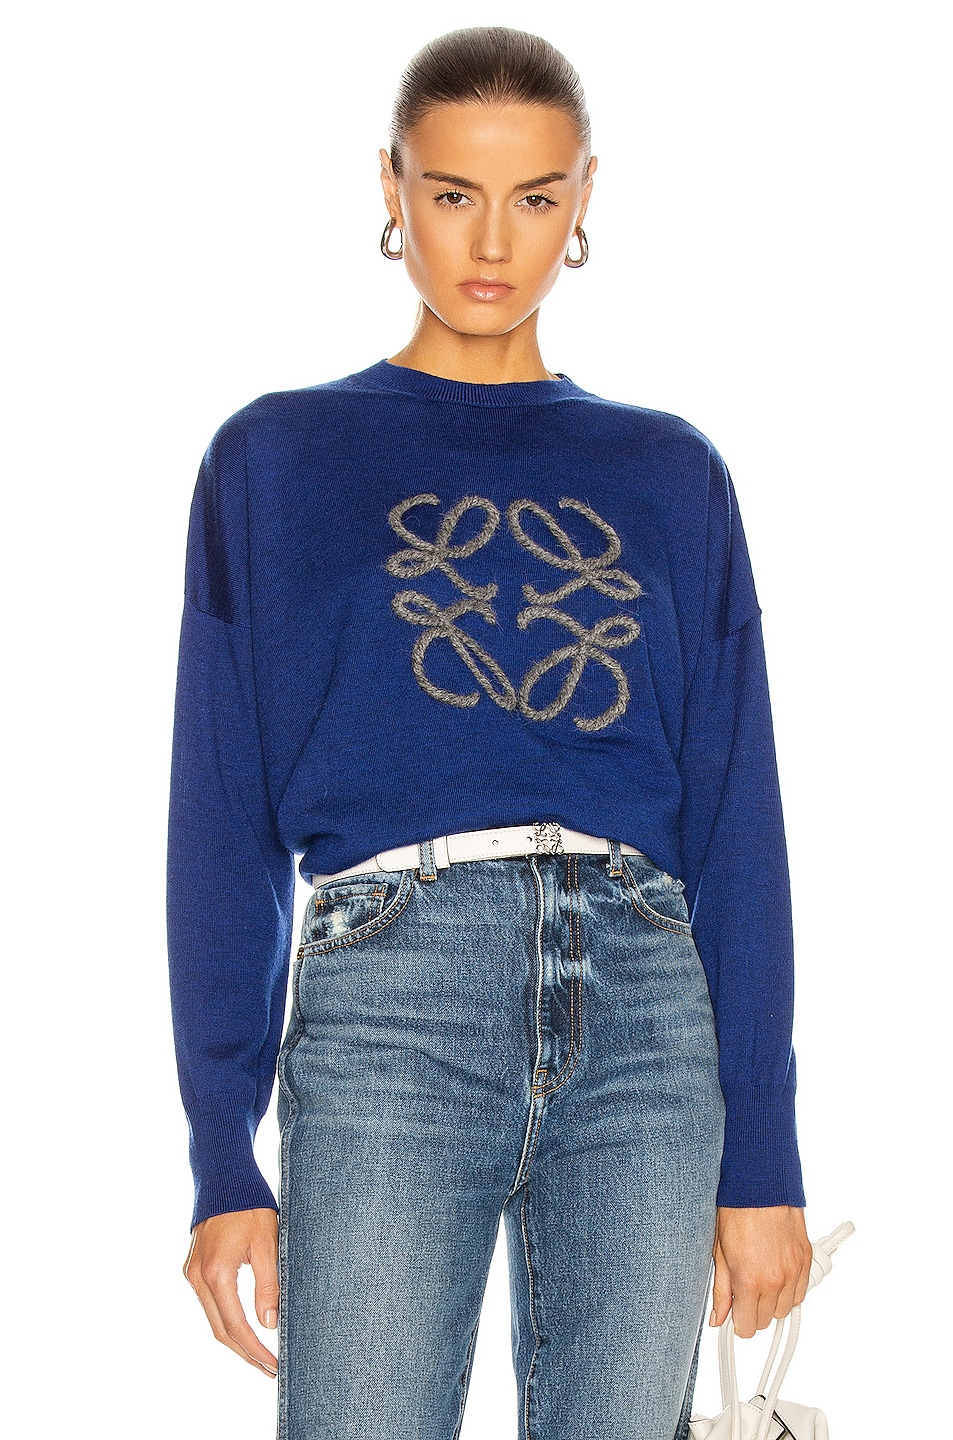 Image 1 of Loewe Anagram Sweater in Navy & Indigo Dye